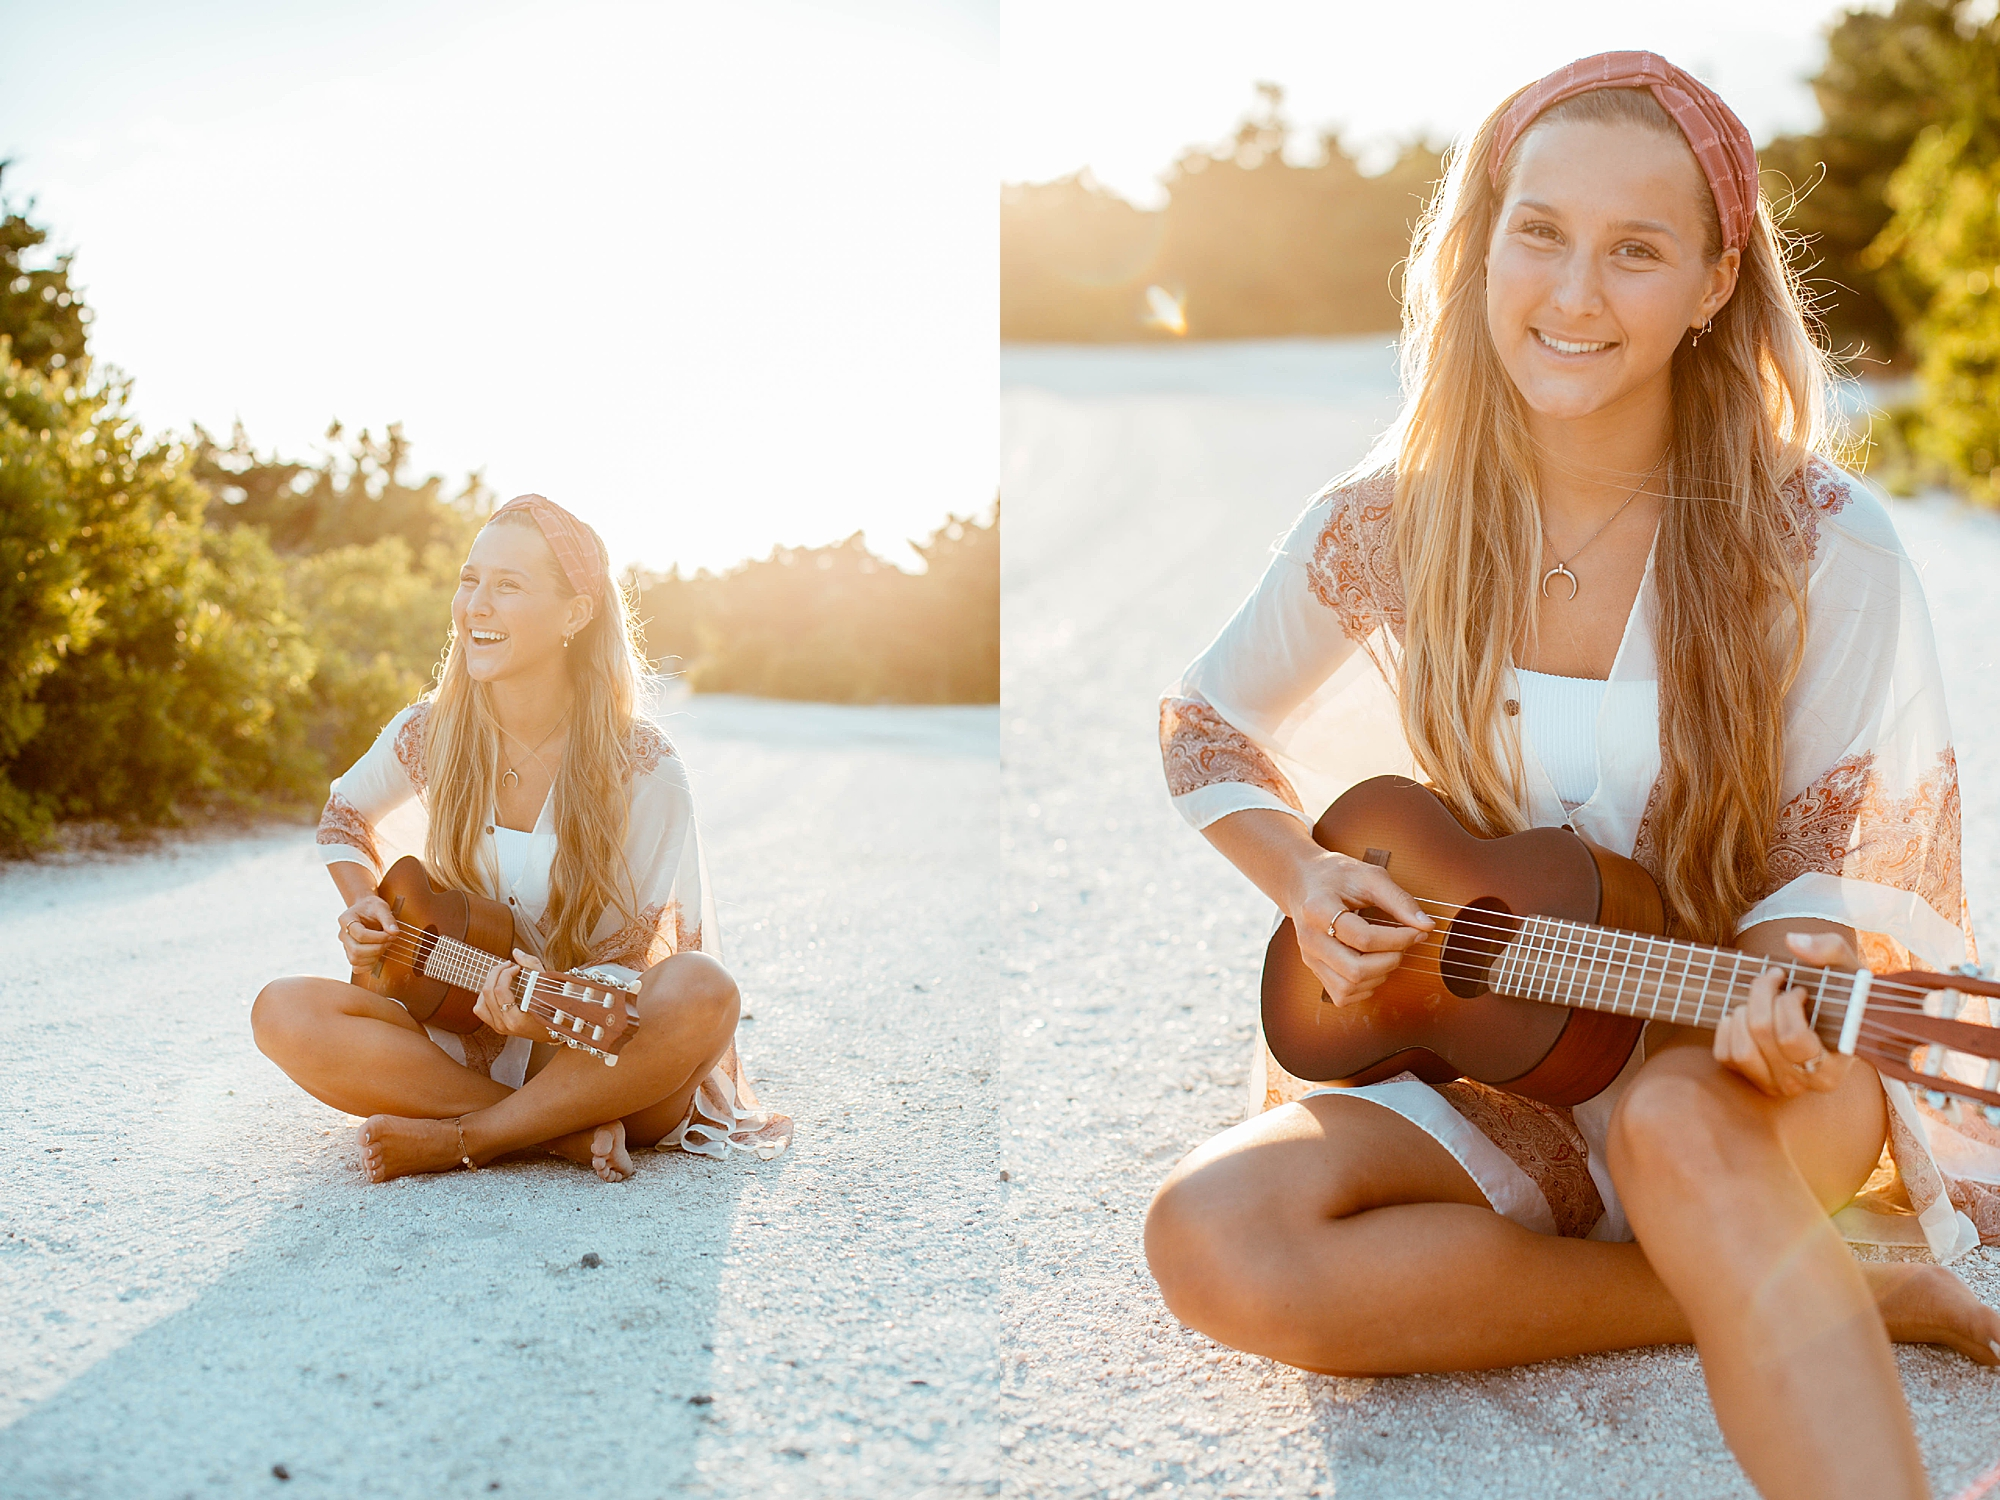 Natural and Bright Seaside Park New Jersey Boho Lifestlyle Beach Portrait Photography by Kelee Bovelle_0031.jpg